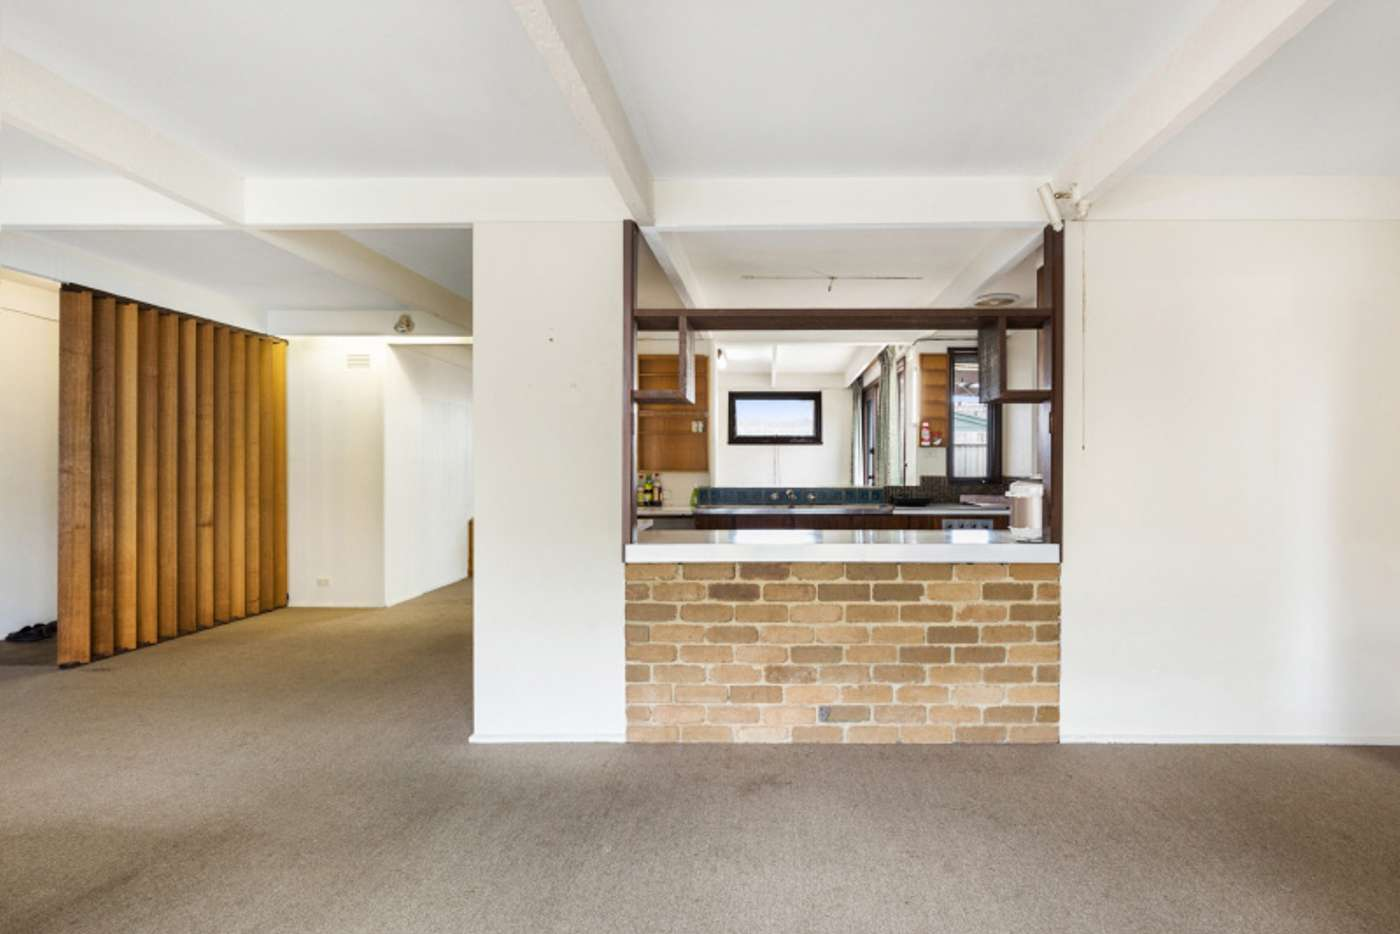 Sixth view of Homely house listing, 1 Harley Place, Wheelers Hill VIC 3150